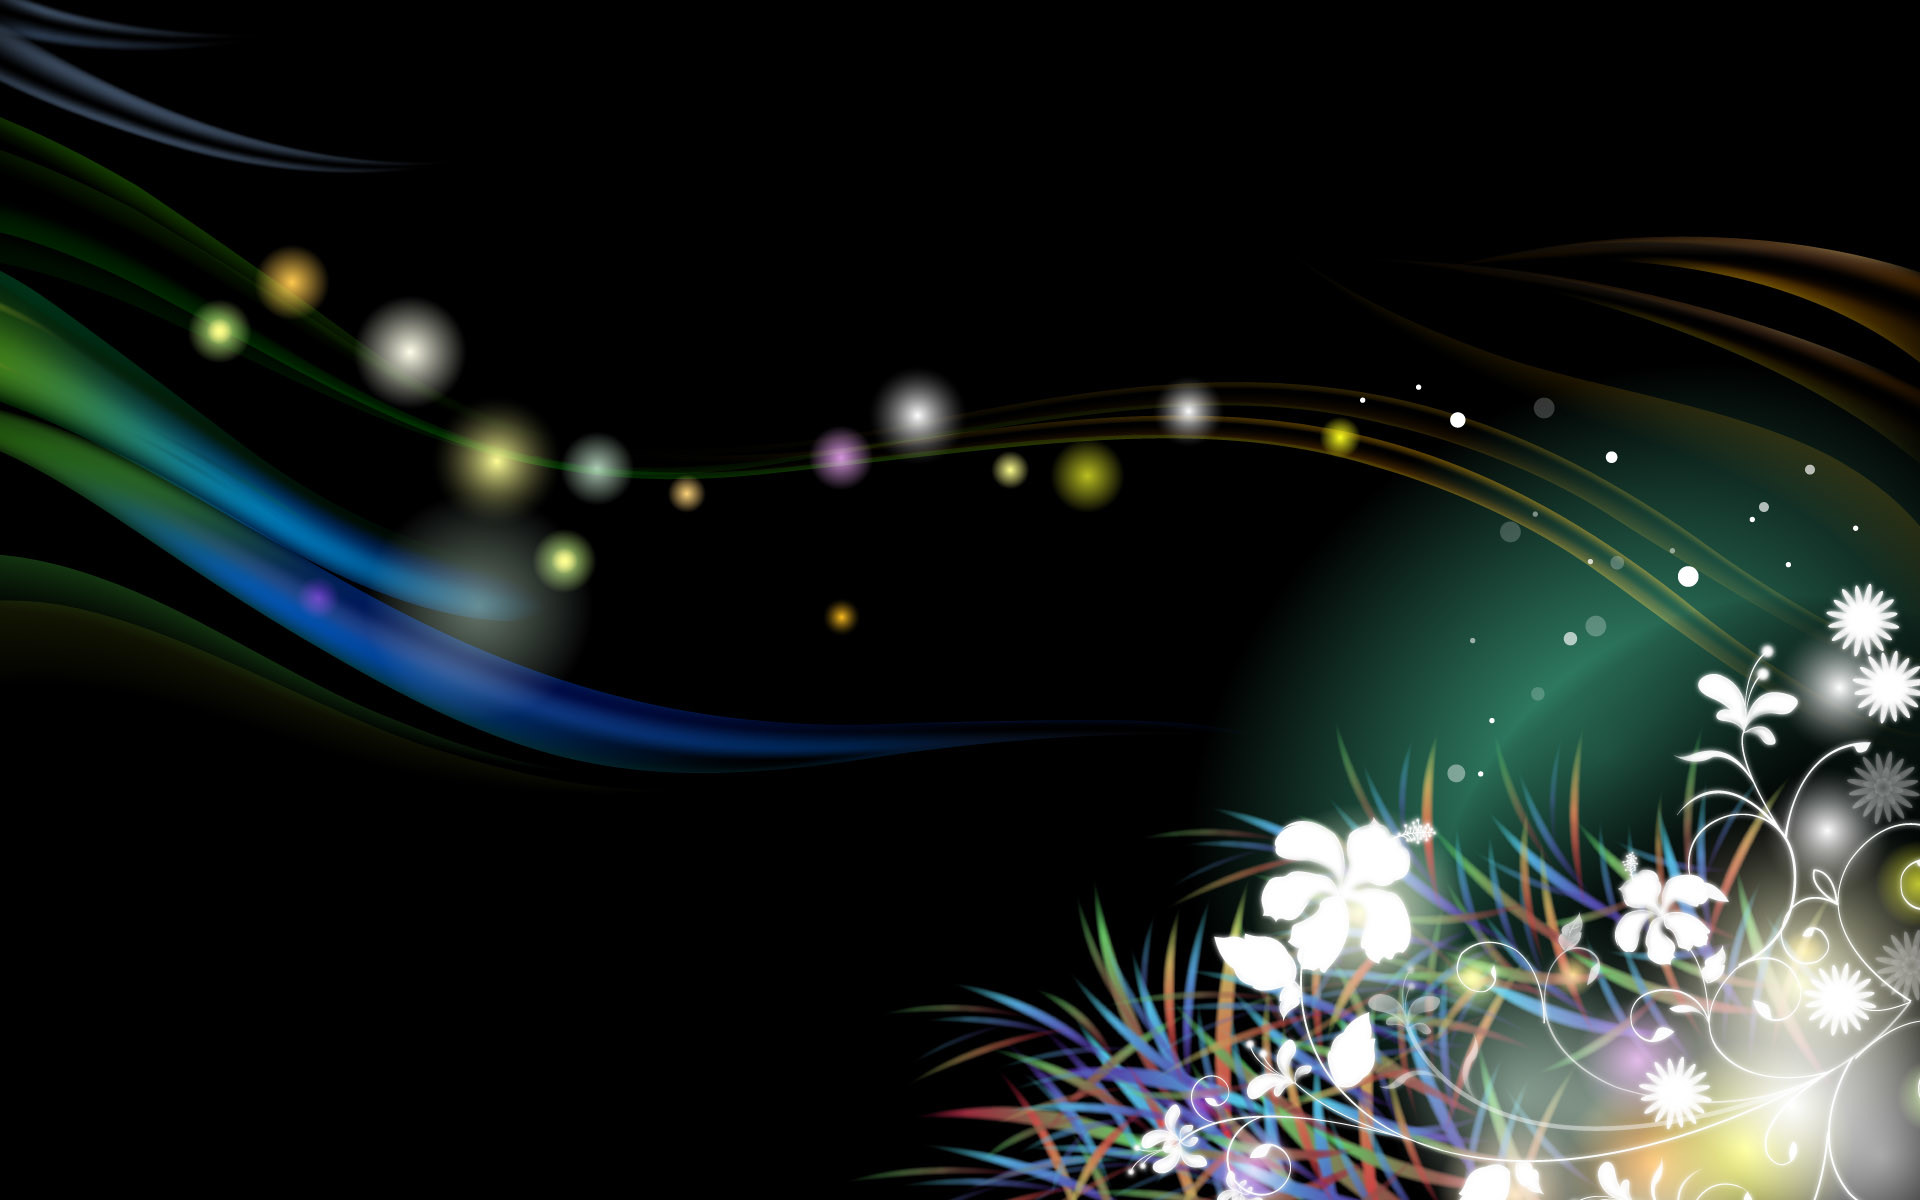 Abstract Wallpaper Widescreen 2993 Hd Wallpapers in Abstract .